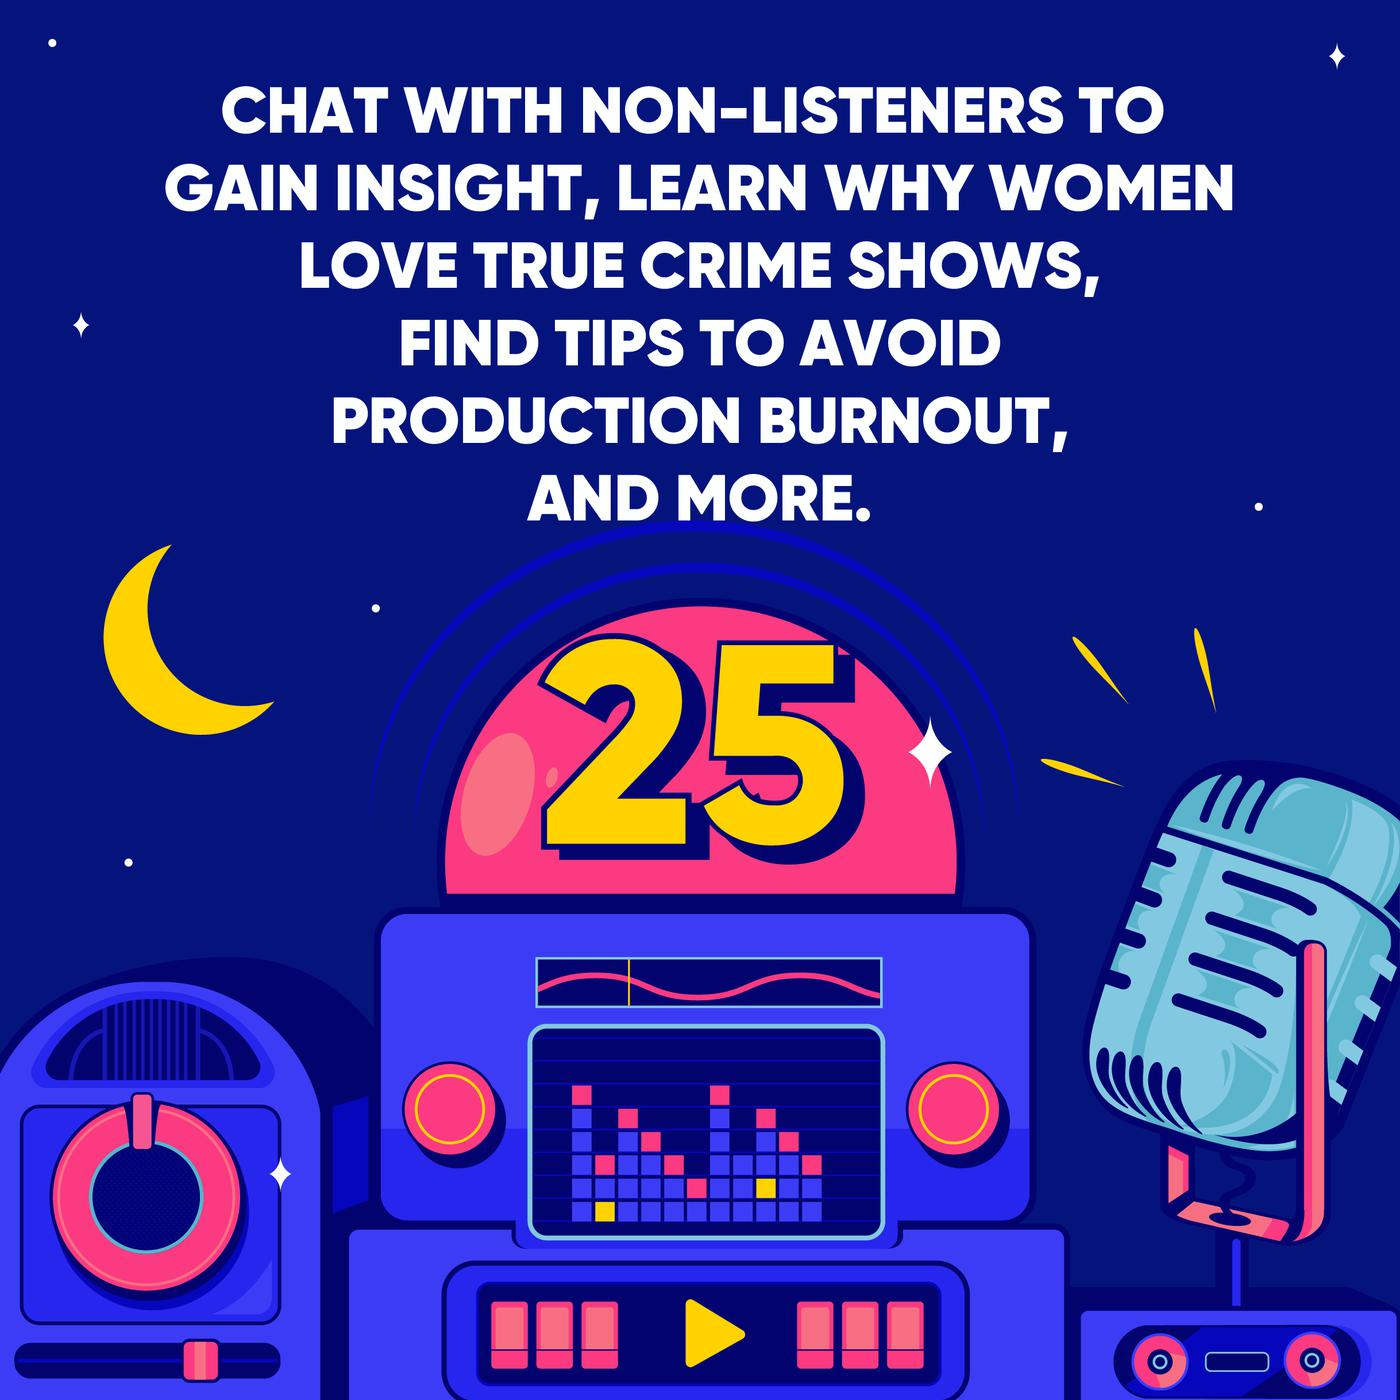 Chat with Non-listeners to Gain Insight, Learn why Women Love True Crime Shows, Find Tips to Avoid Production Burnout, and More.